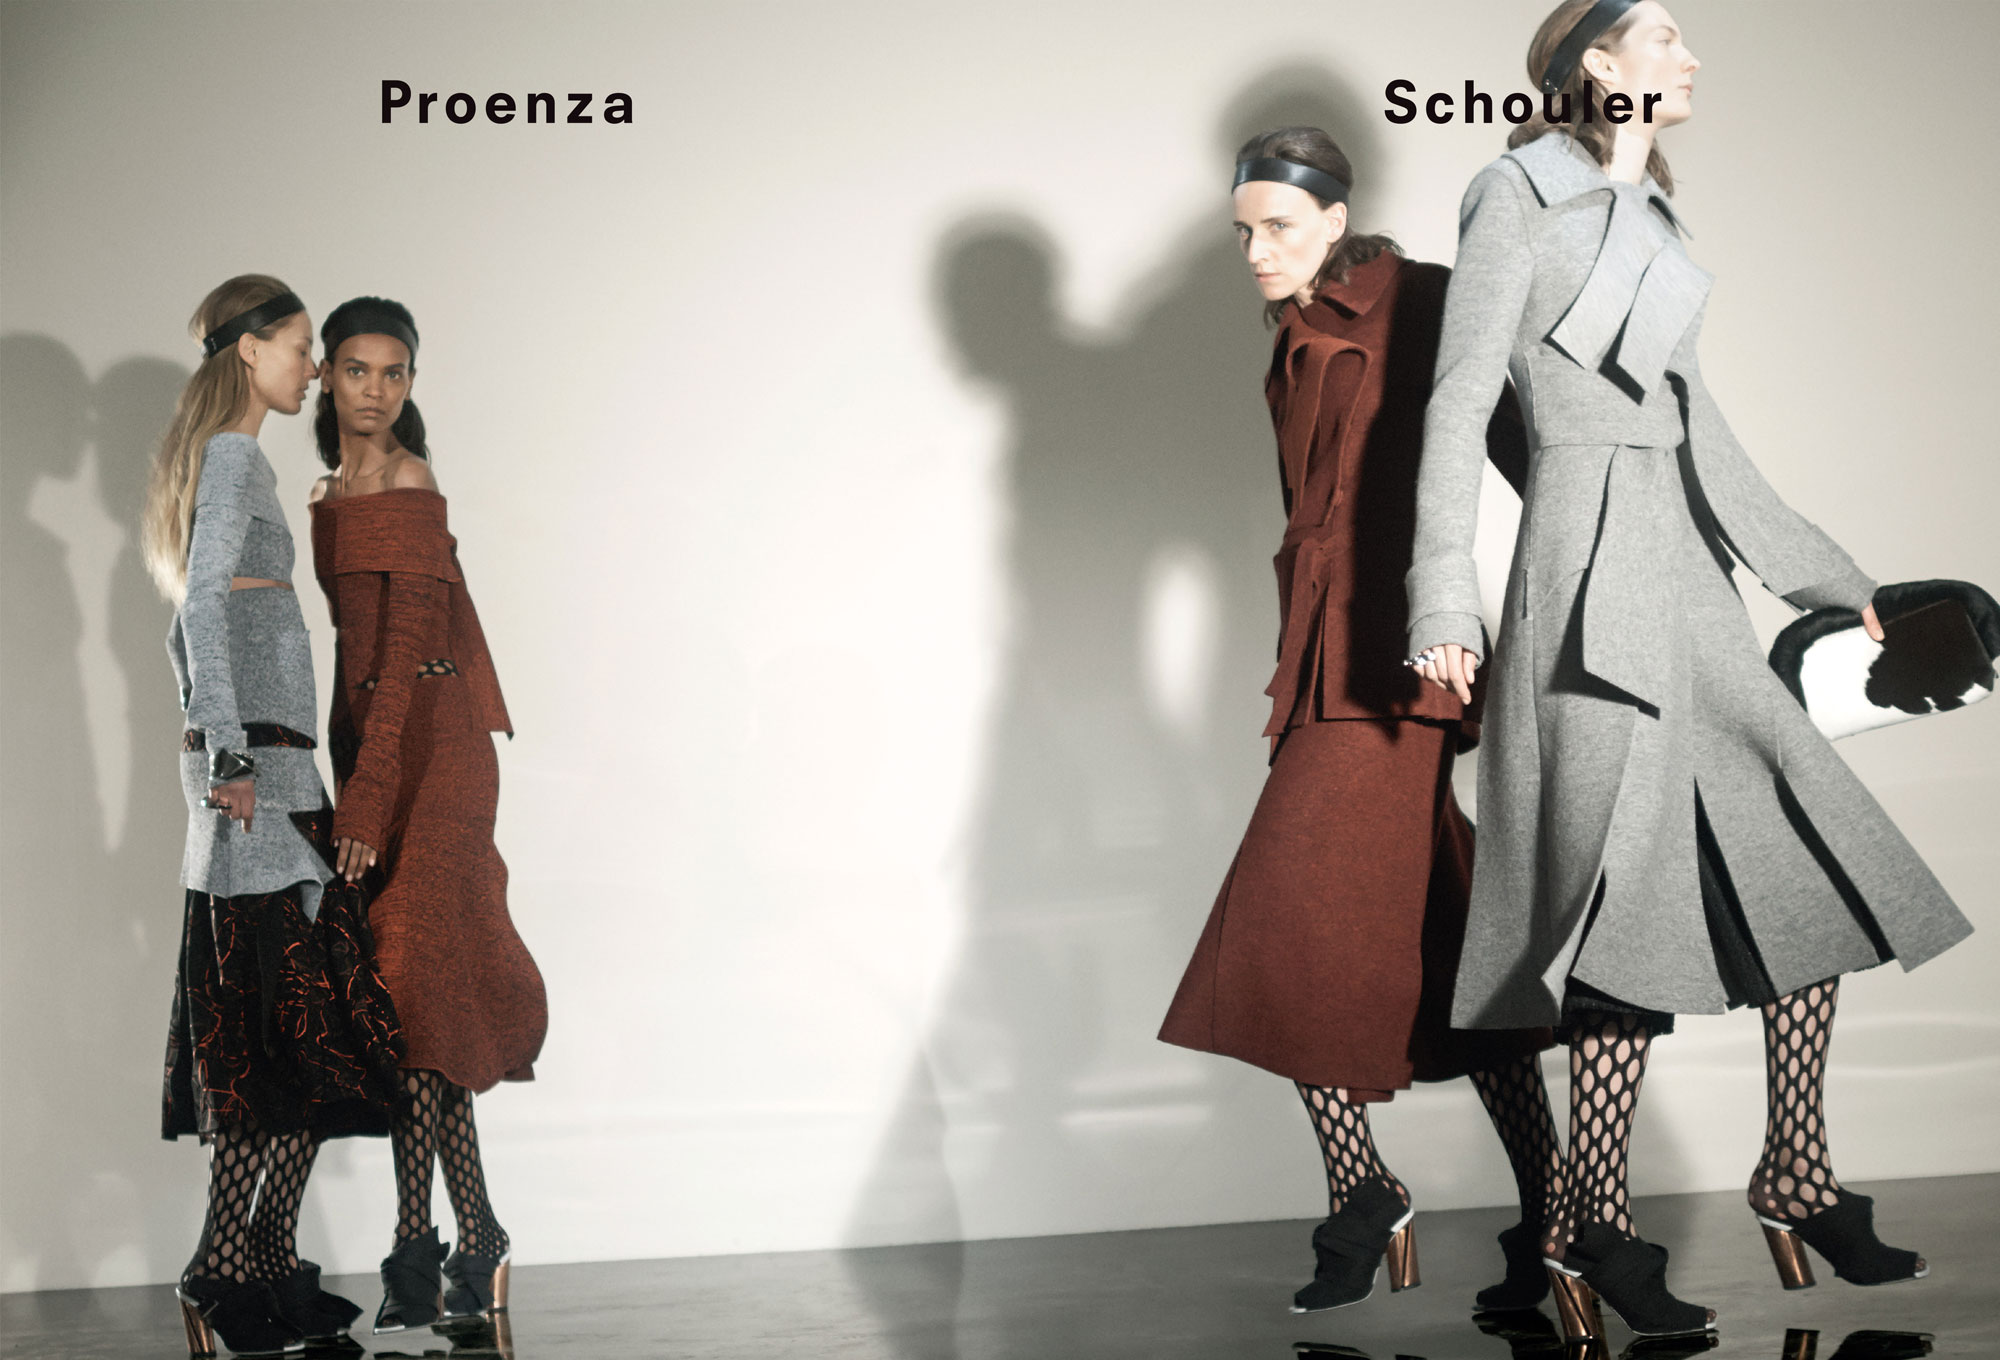 anne-catherine-lacroix-karolin-wolter-liisa-winkler-liya-kebede-by-david-sims-for-proenza-schouler-fall-winter-2015-2016-2